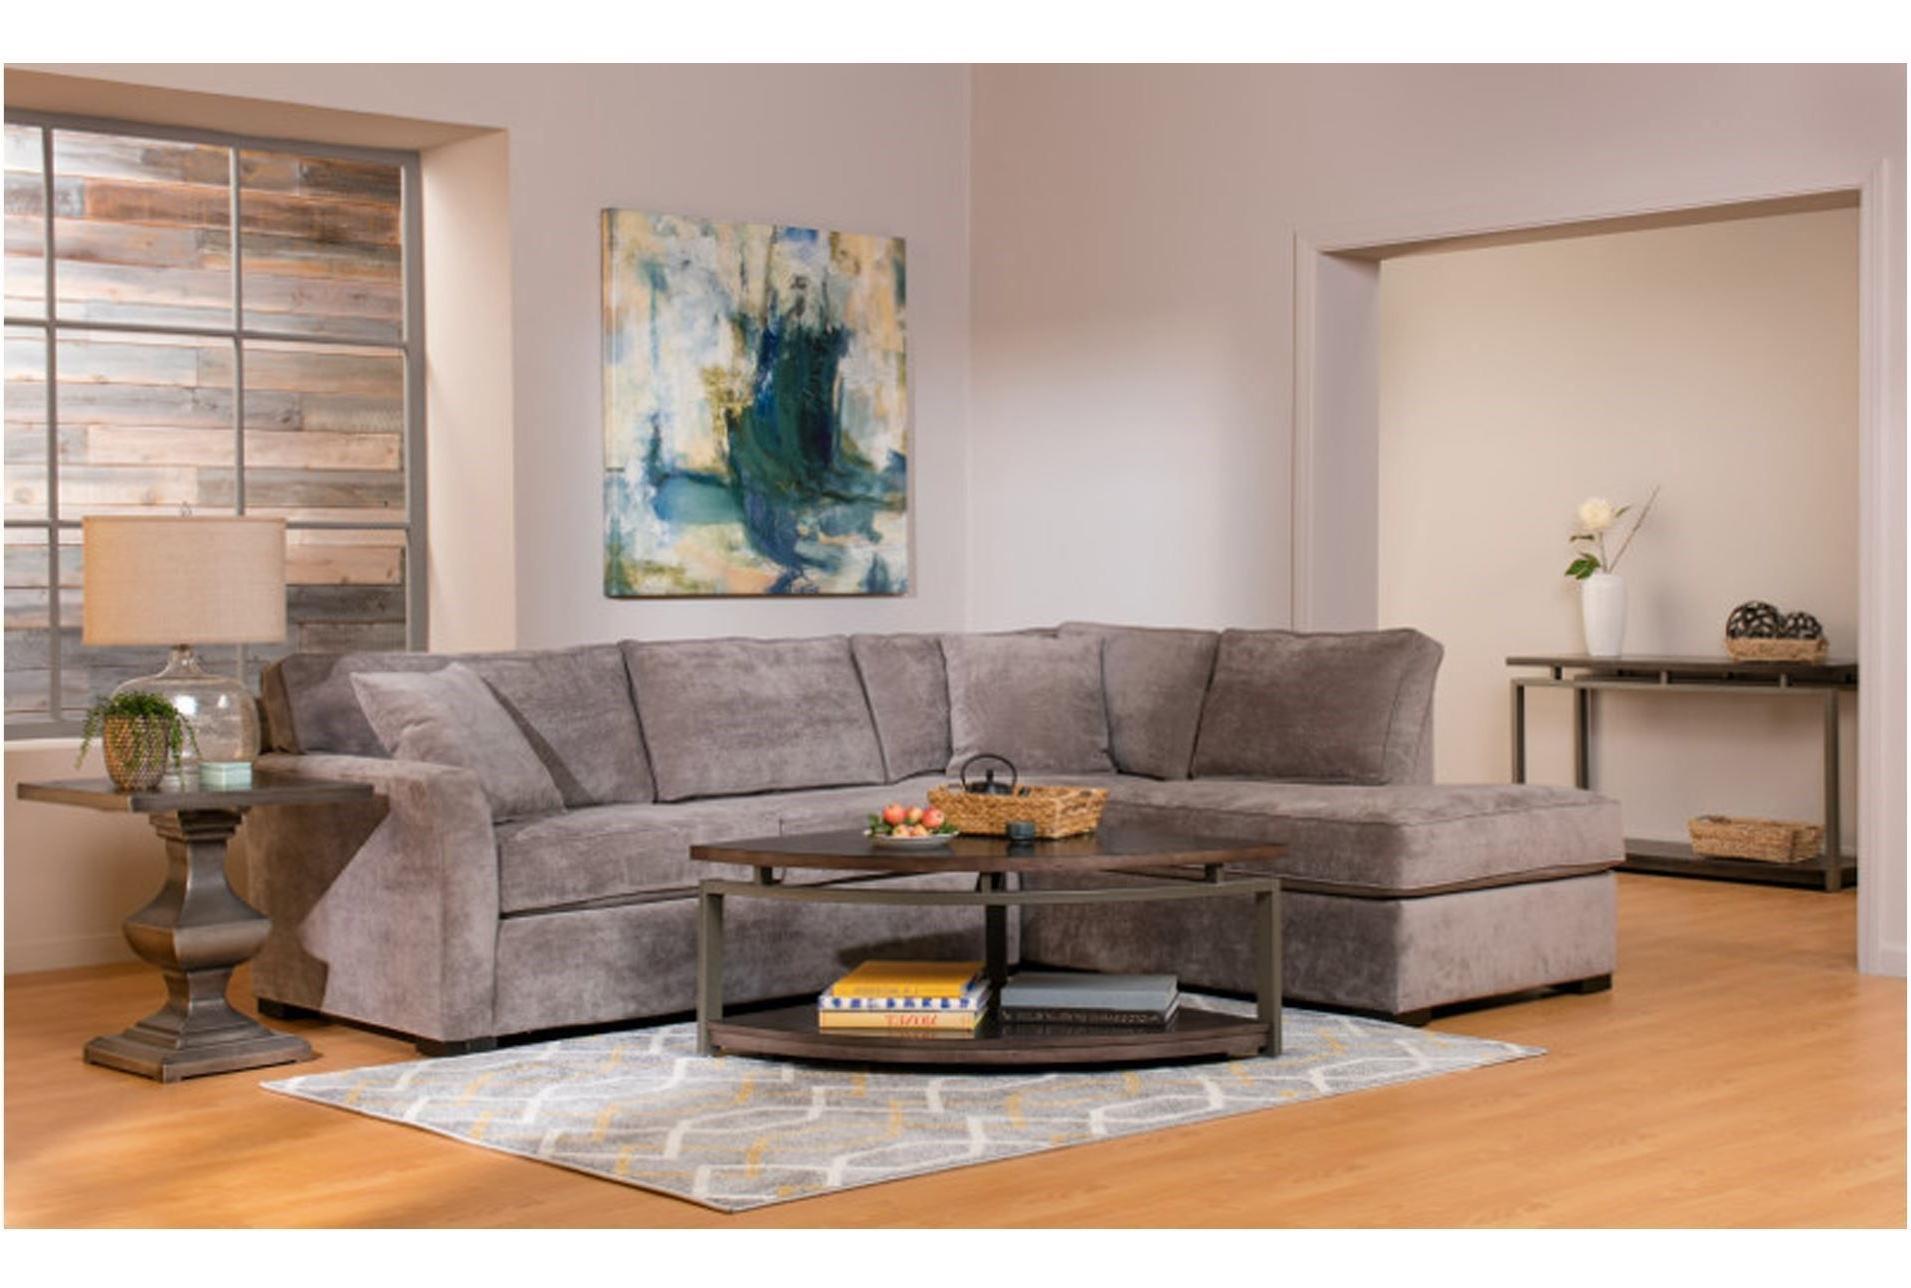 Aspen 2 Piece Sleeper Sectionals With Laf Chaise Within Popular Aspen 2 Piece Sectional W/laf Chaise In  (View 8 of 20)